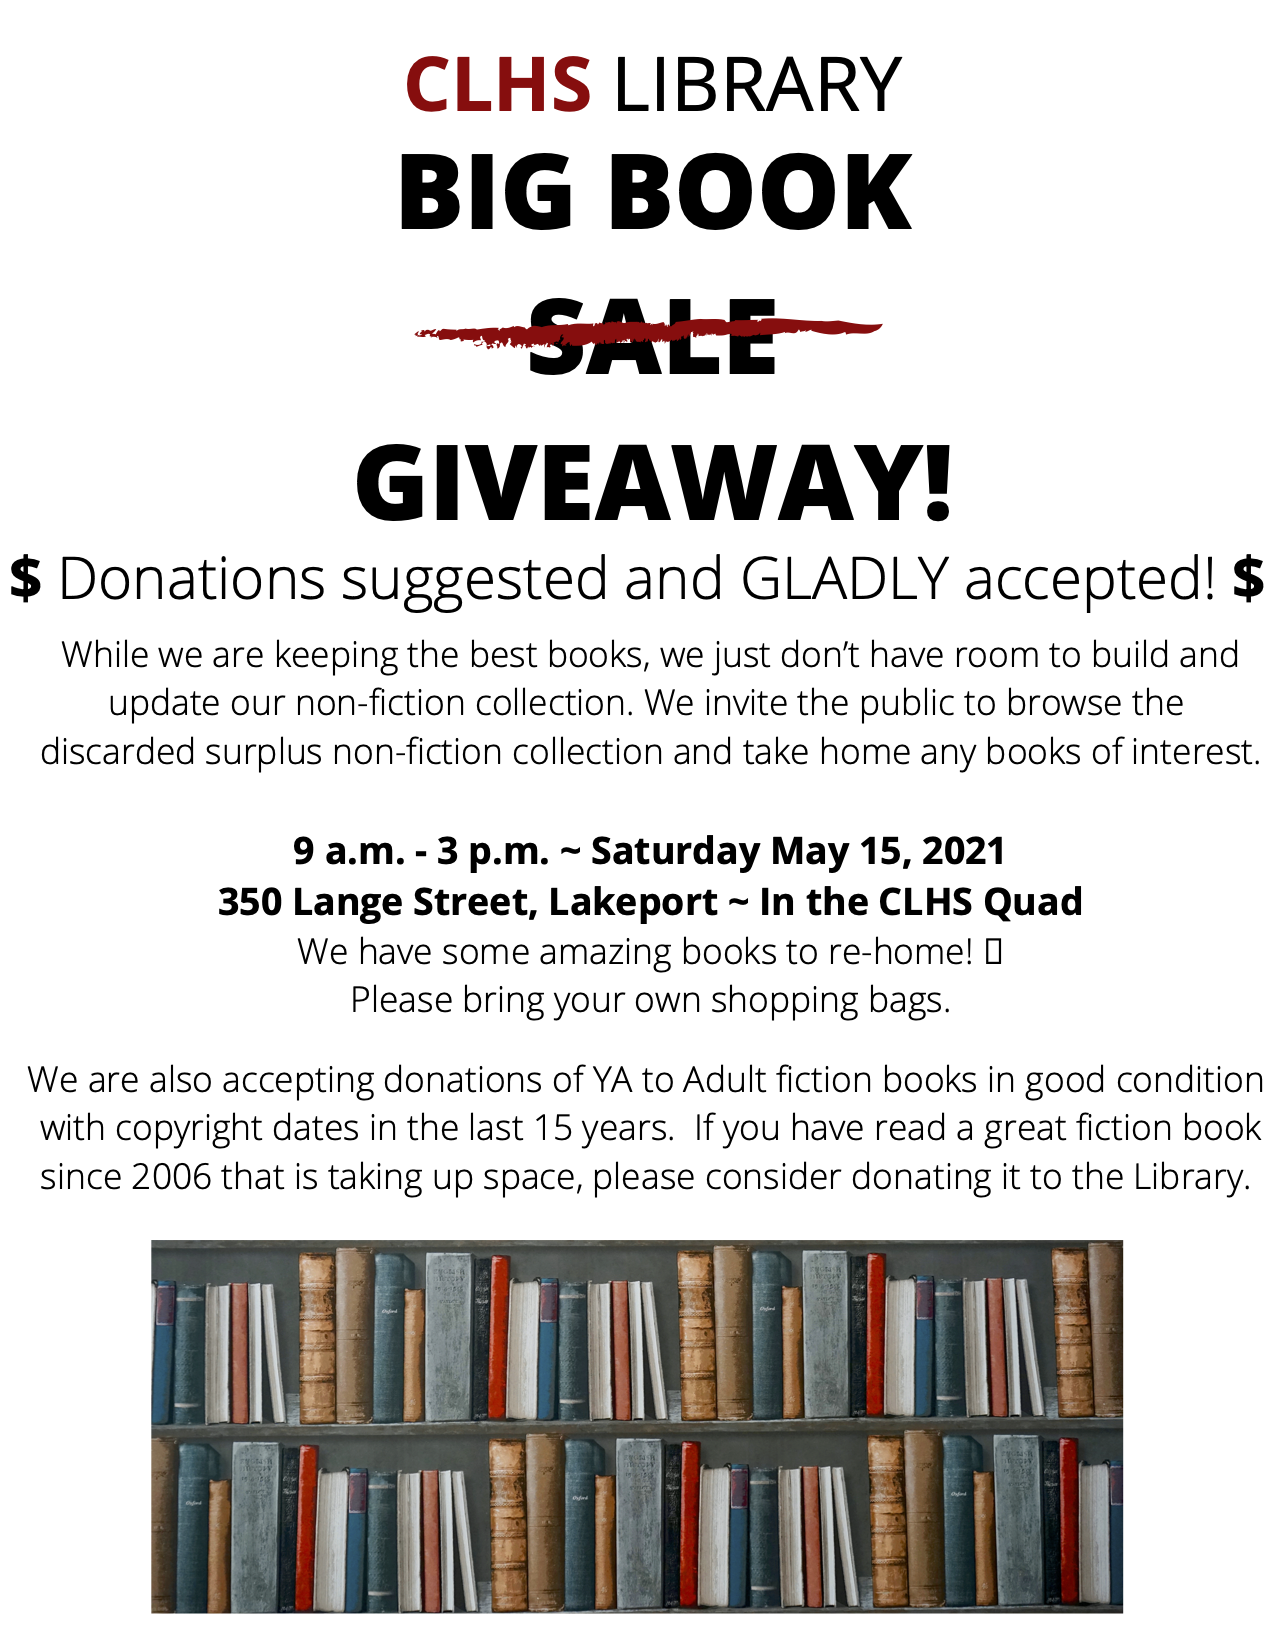 CLHS Library Big Book Giveaway, Saturday, May 15, 2021, in the CLHS Quad